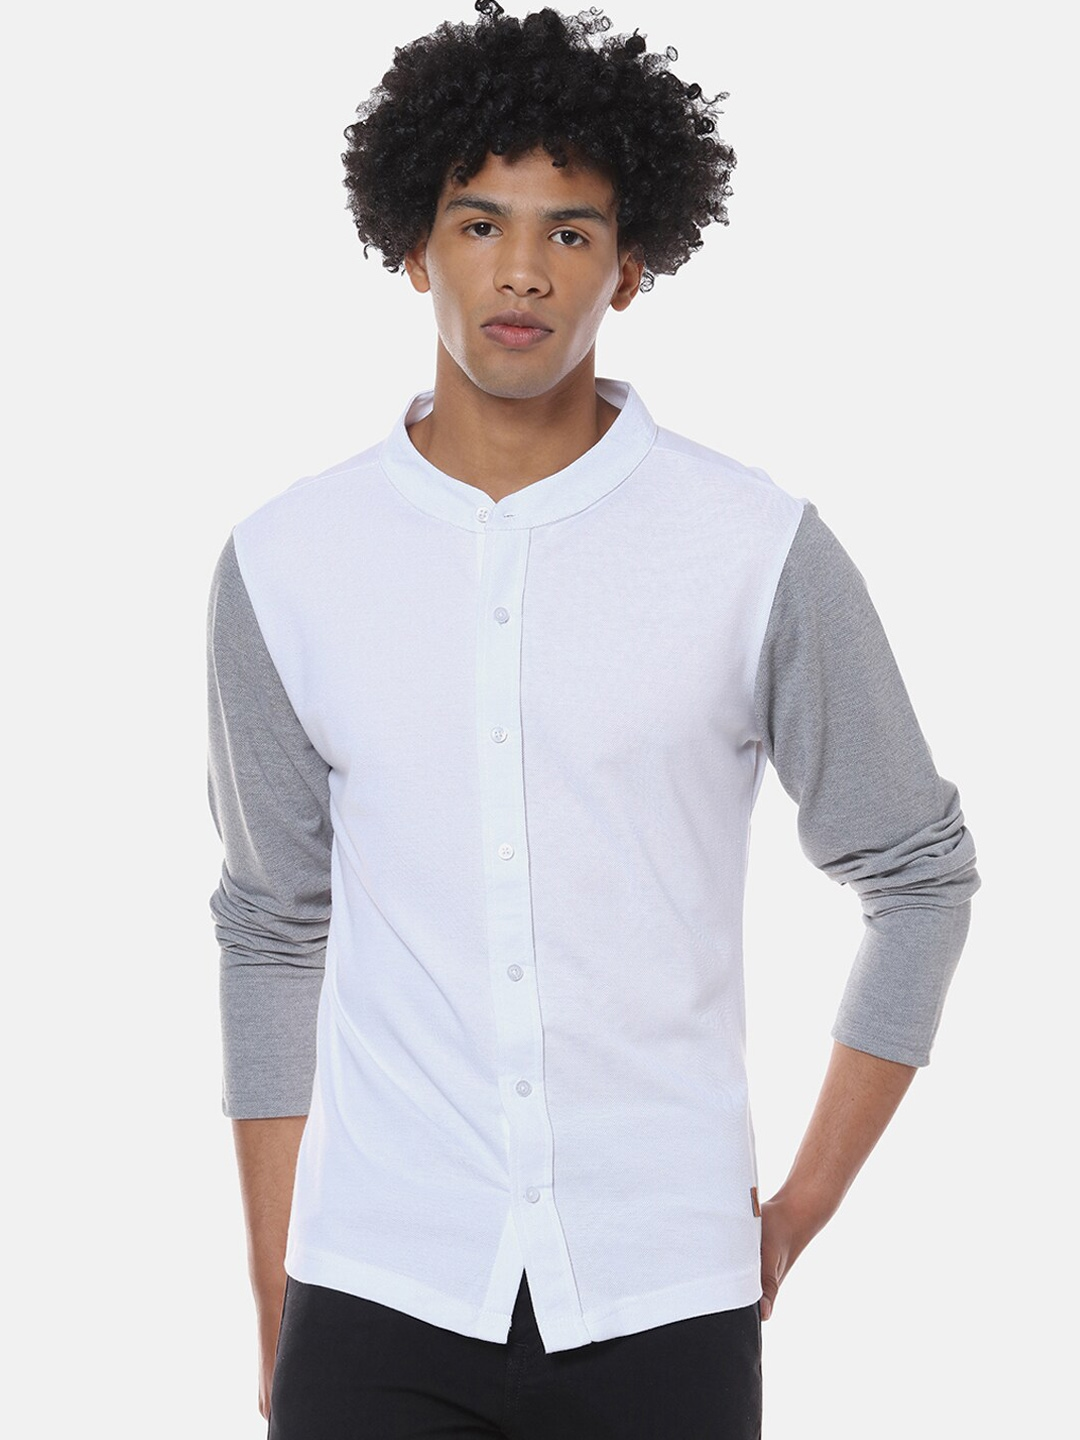 Campus Sutra Men White Regular Fit Solid Casual Shirt